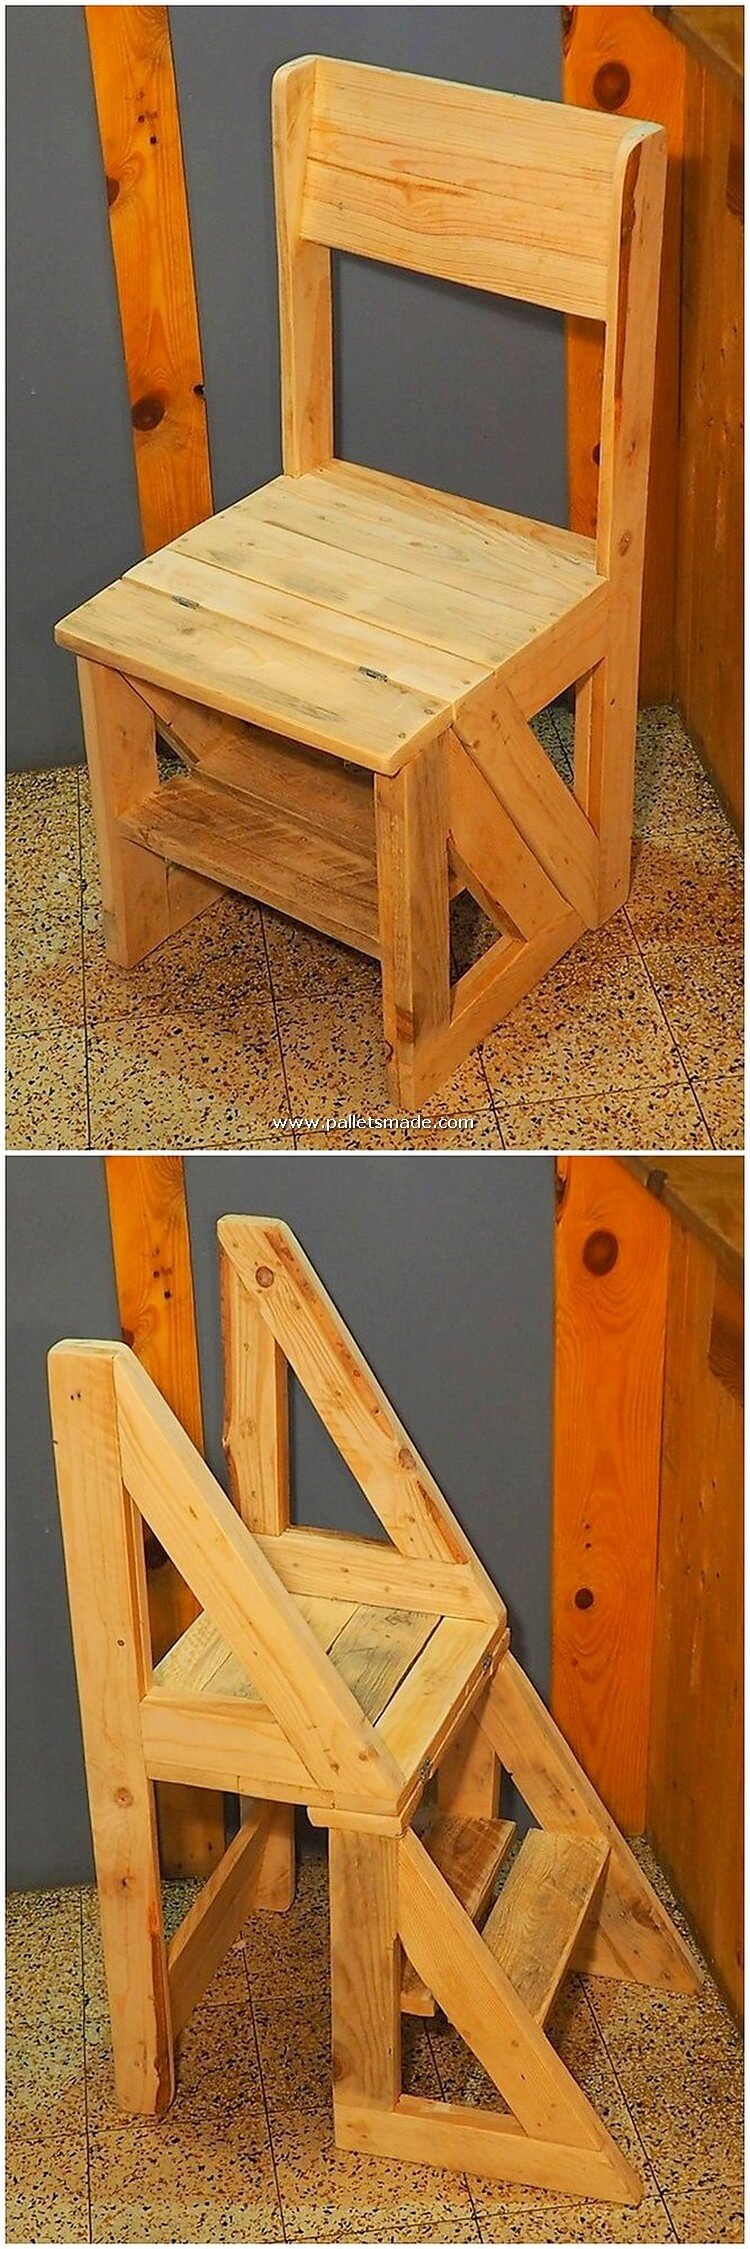 Pallet Chair with Convertible Stairs